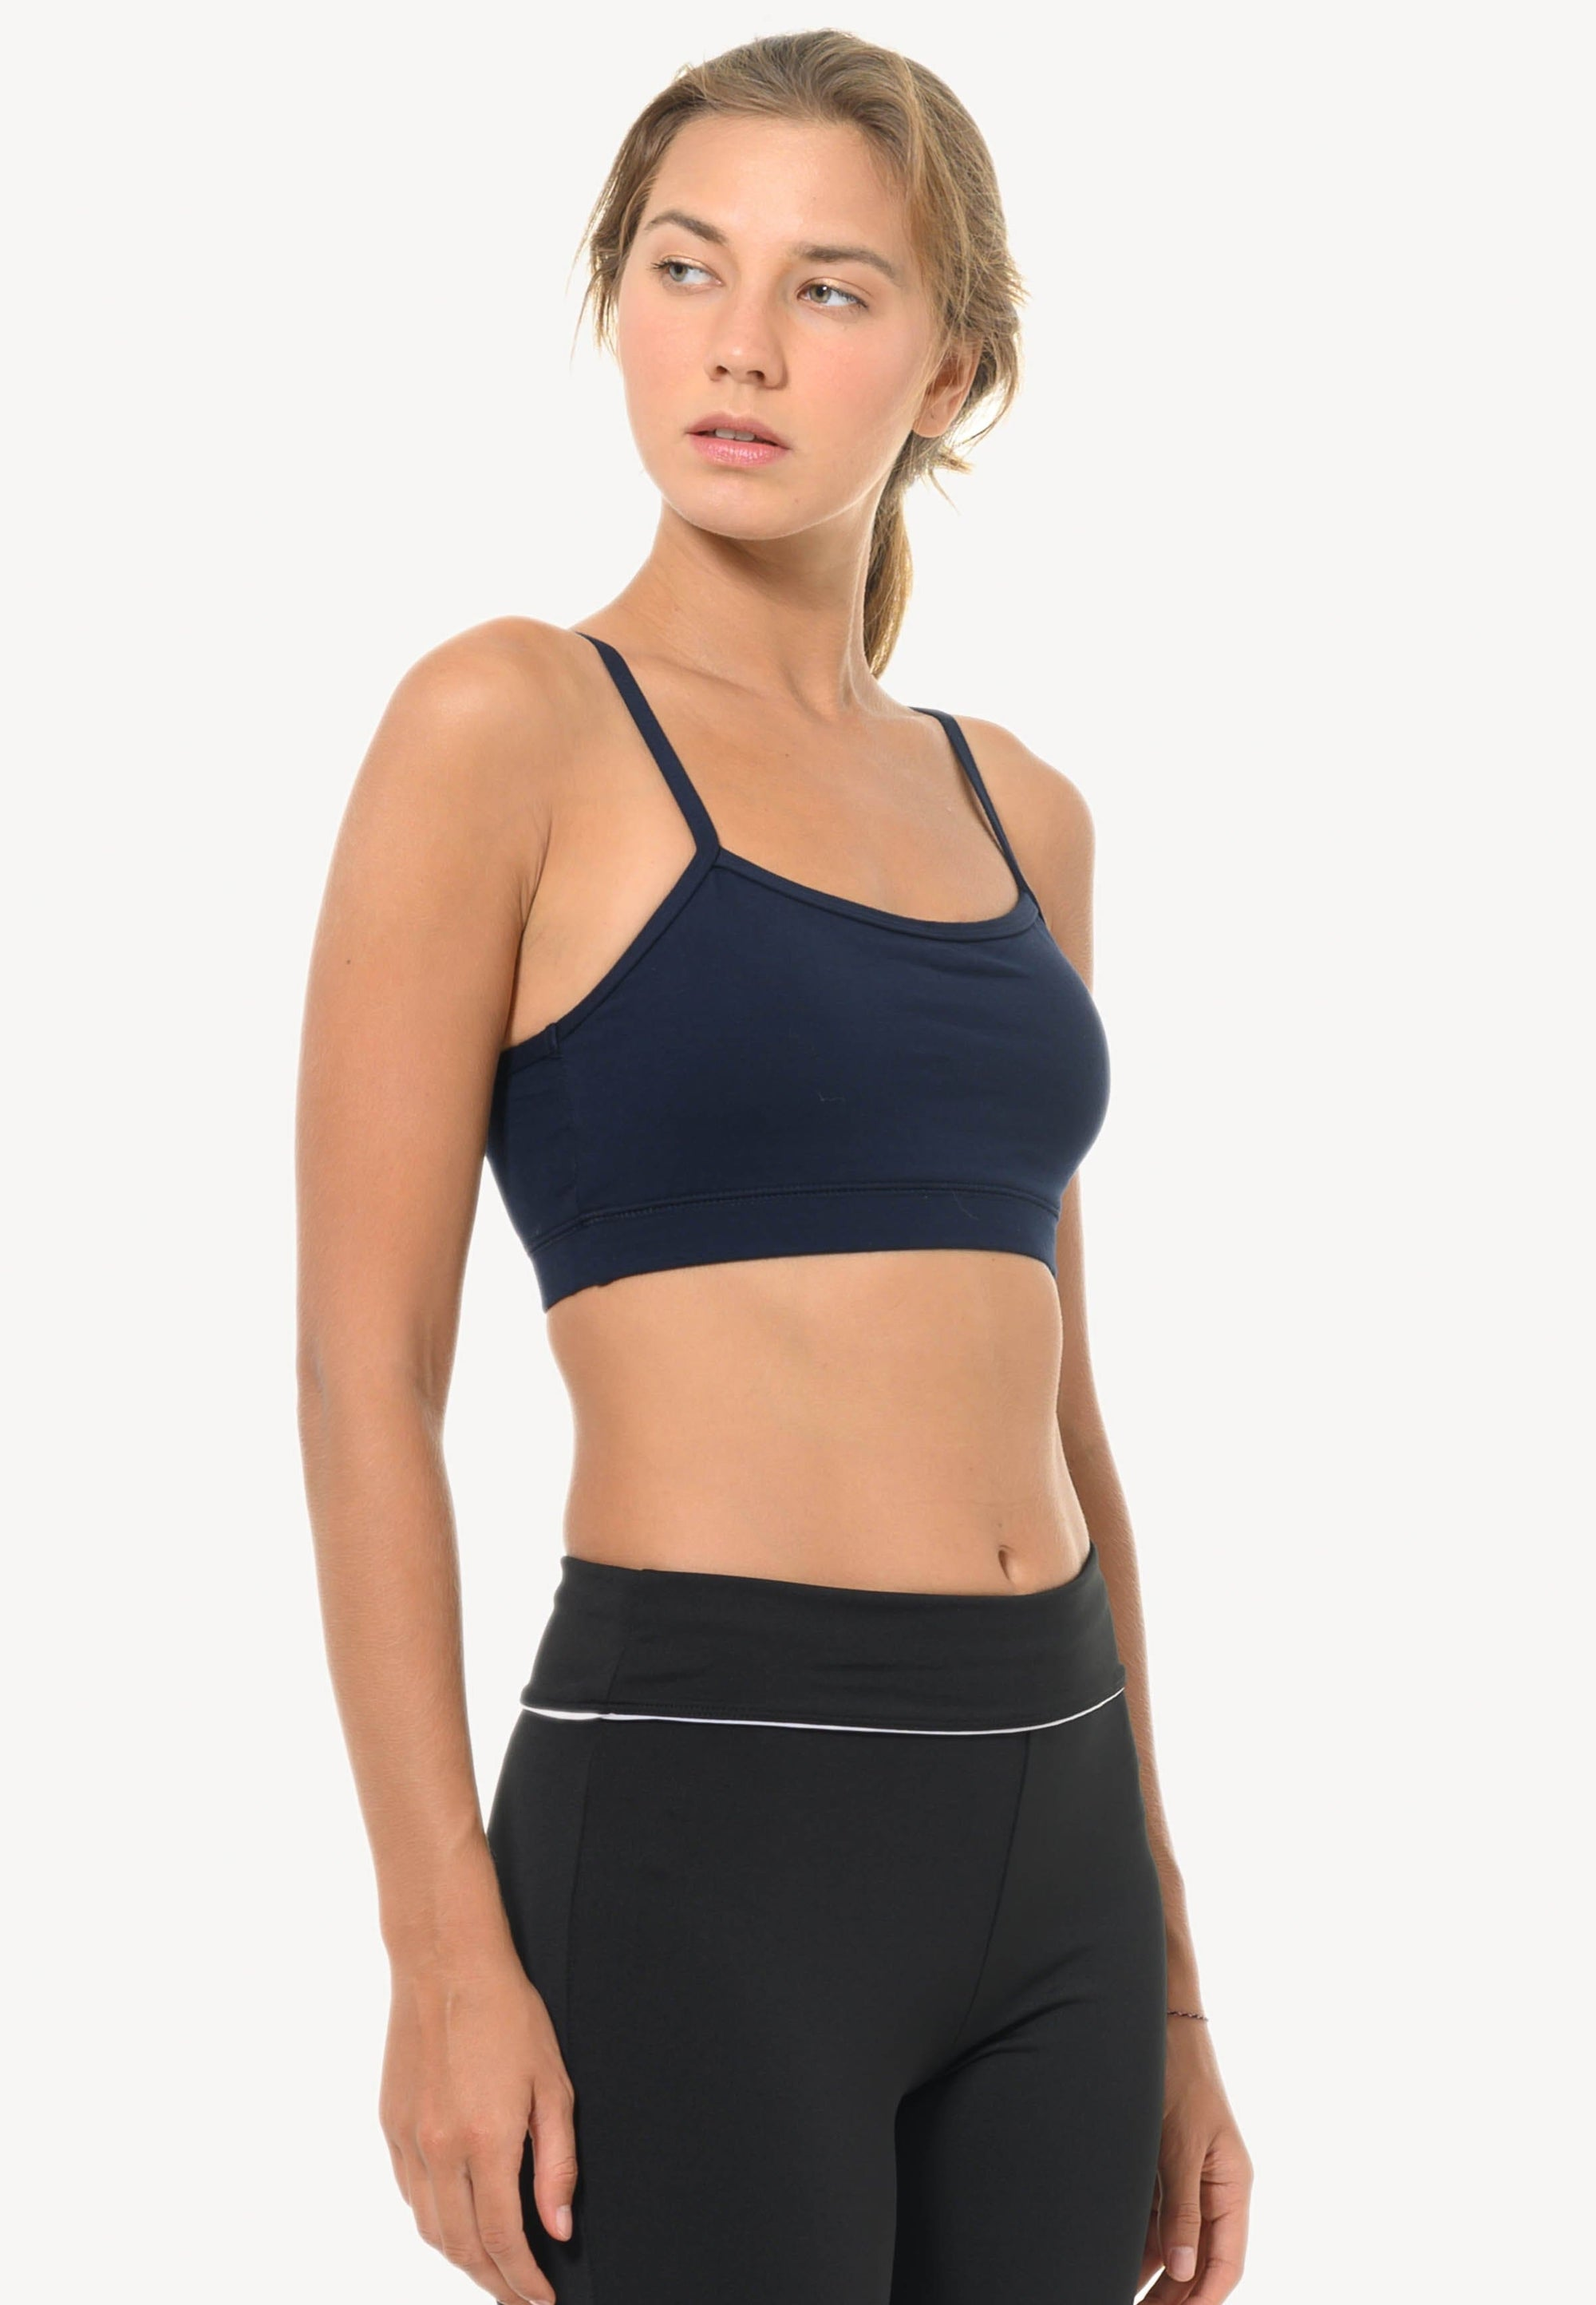 Classic Strappy Sports Bra in Navy (S - 2XL)